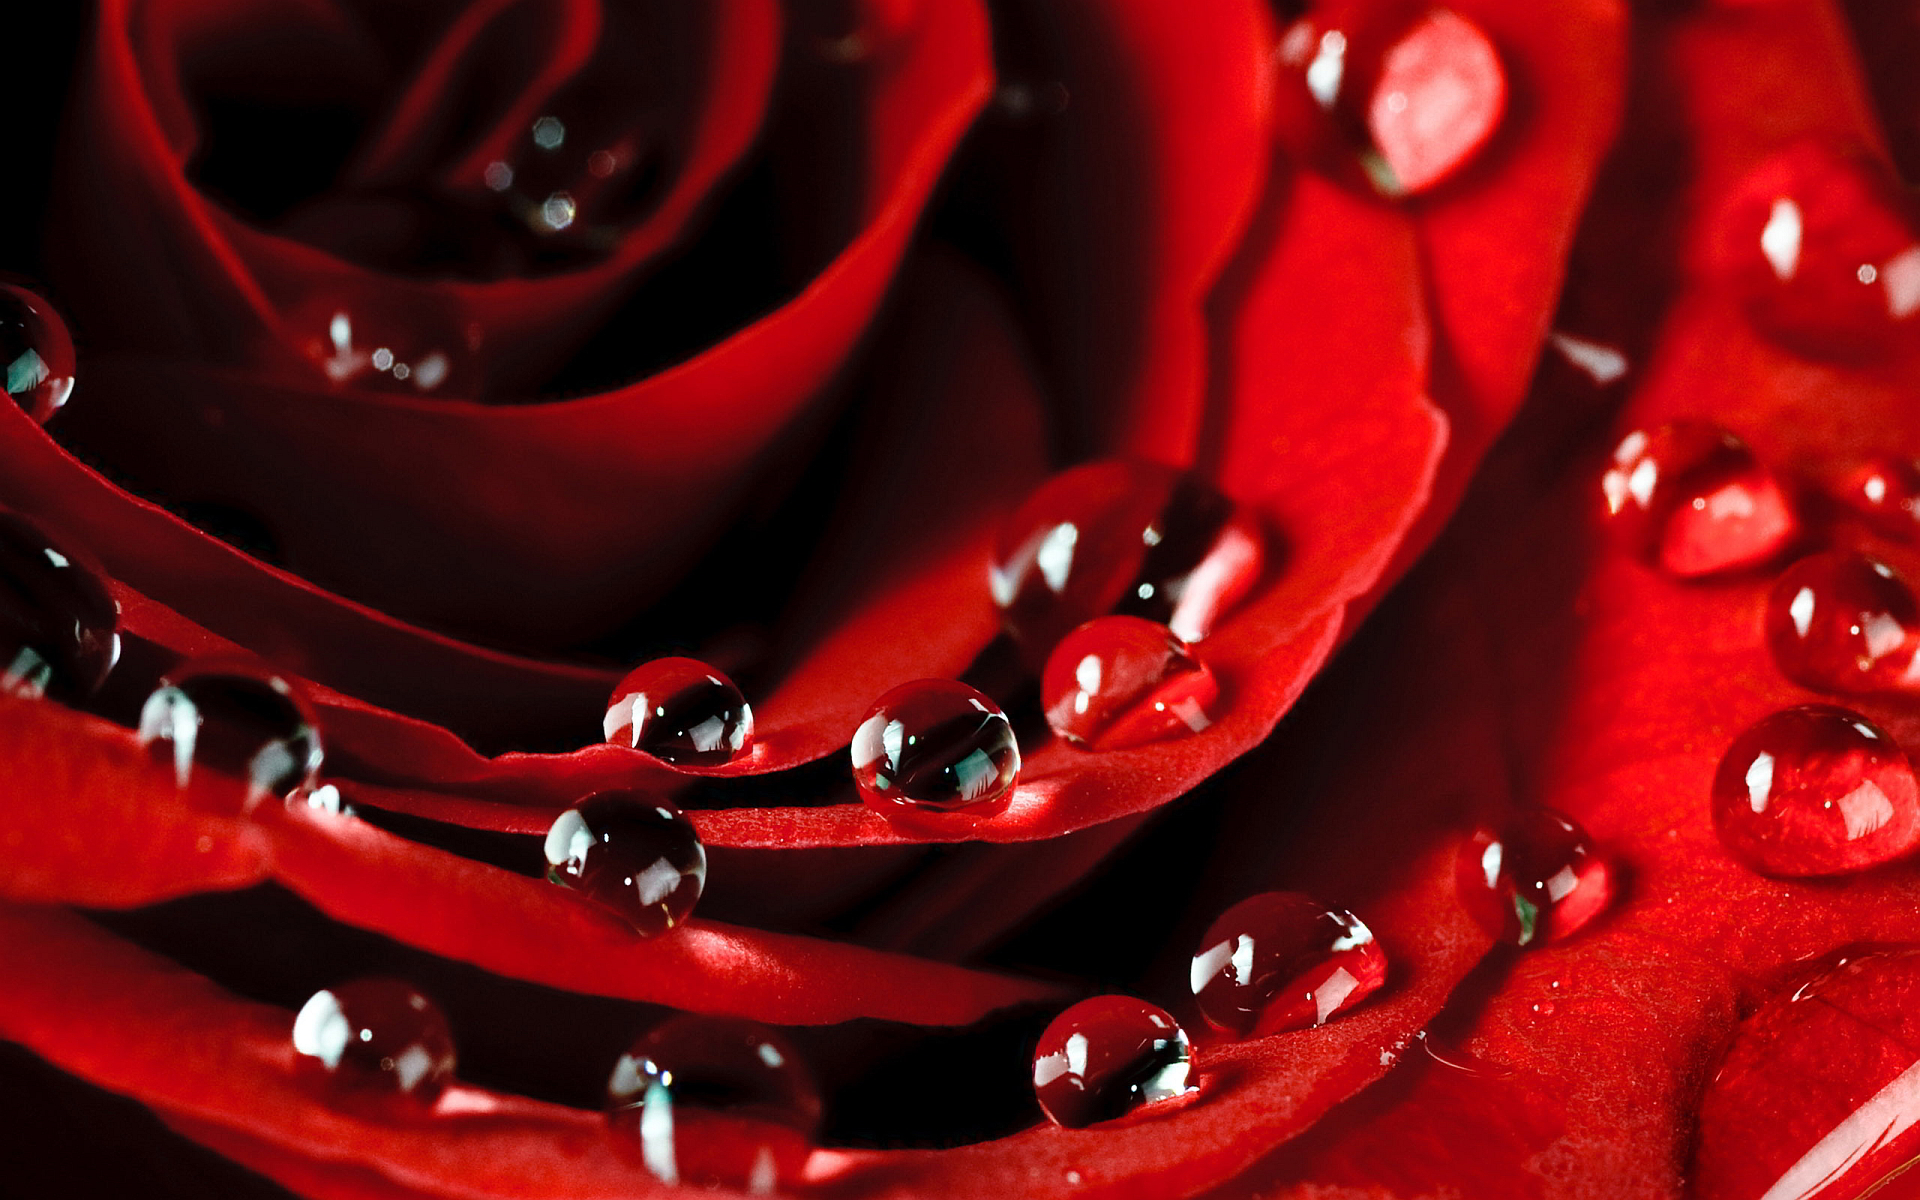 Flowers &amp; Rose <b>Petals Wallpapers</b> HD Pictures – One HD <b>Wallpaper</b> ...